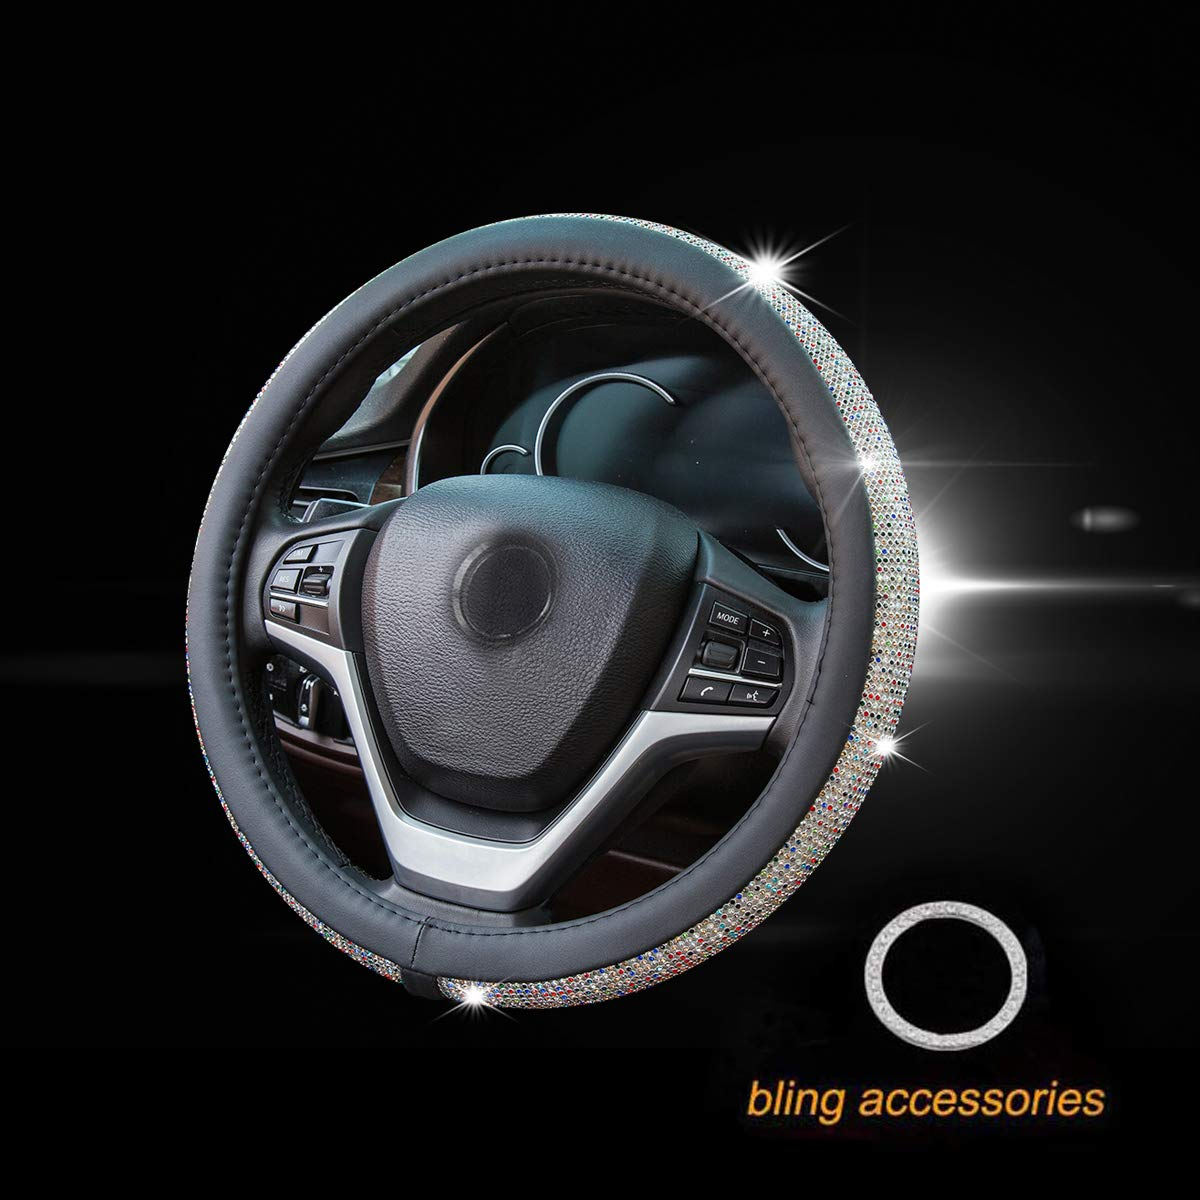 New Diamond Leather Steering Wheel Cover with Bling Bling Crystal Rhinestones, Universal Fit 15 Inch Anti-Slip Wheel Protector for Women Girls (Black Color Diamond)